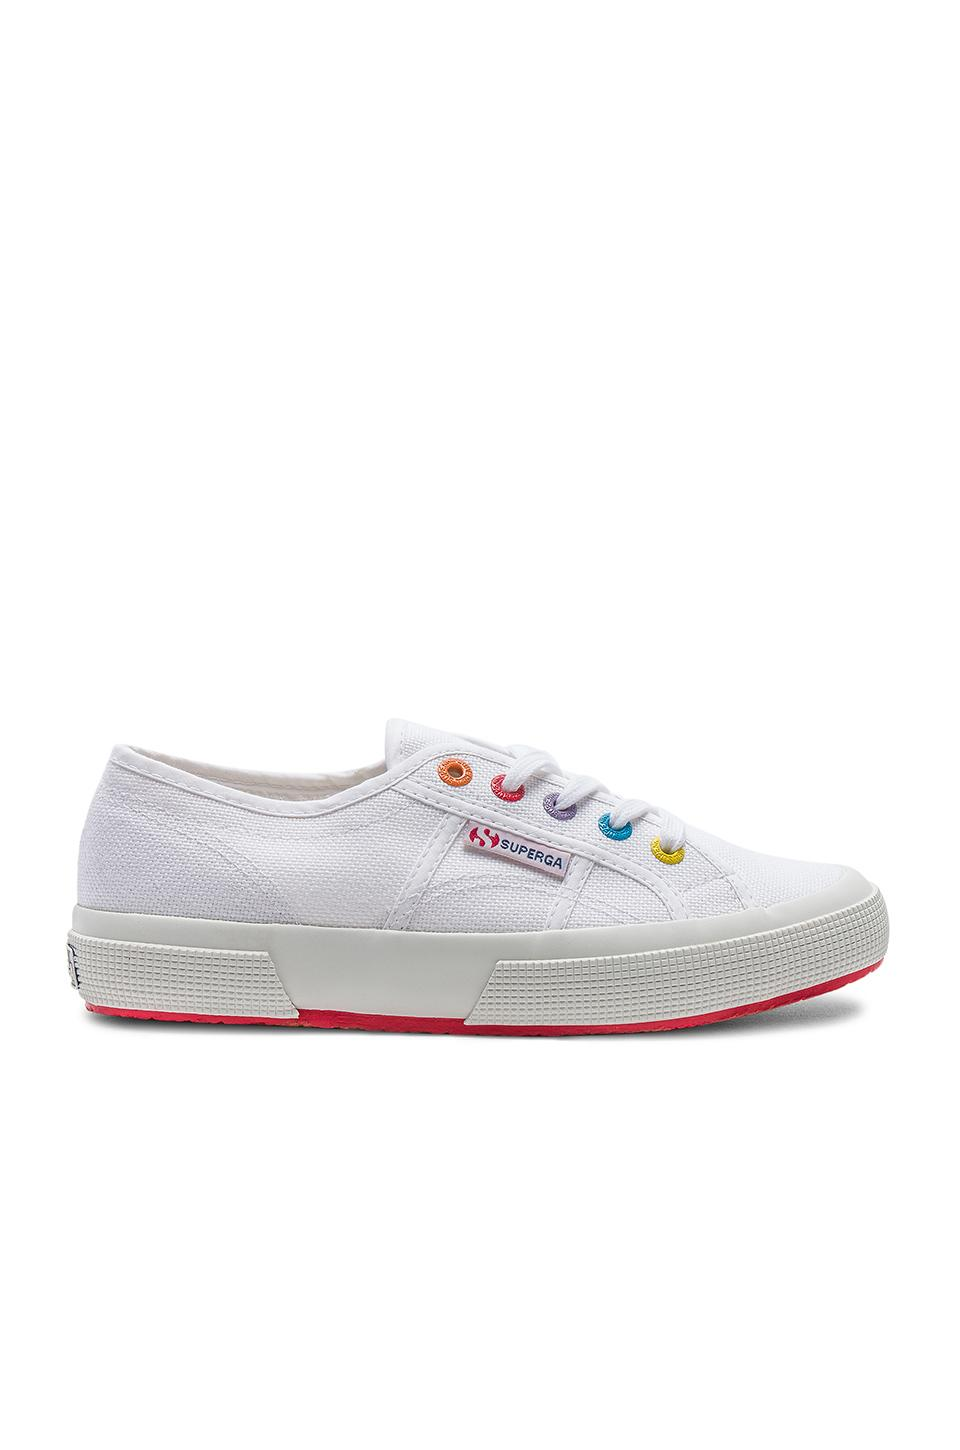 Superga 2750 & 2790 Multi Eyelet Sneaker In White